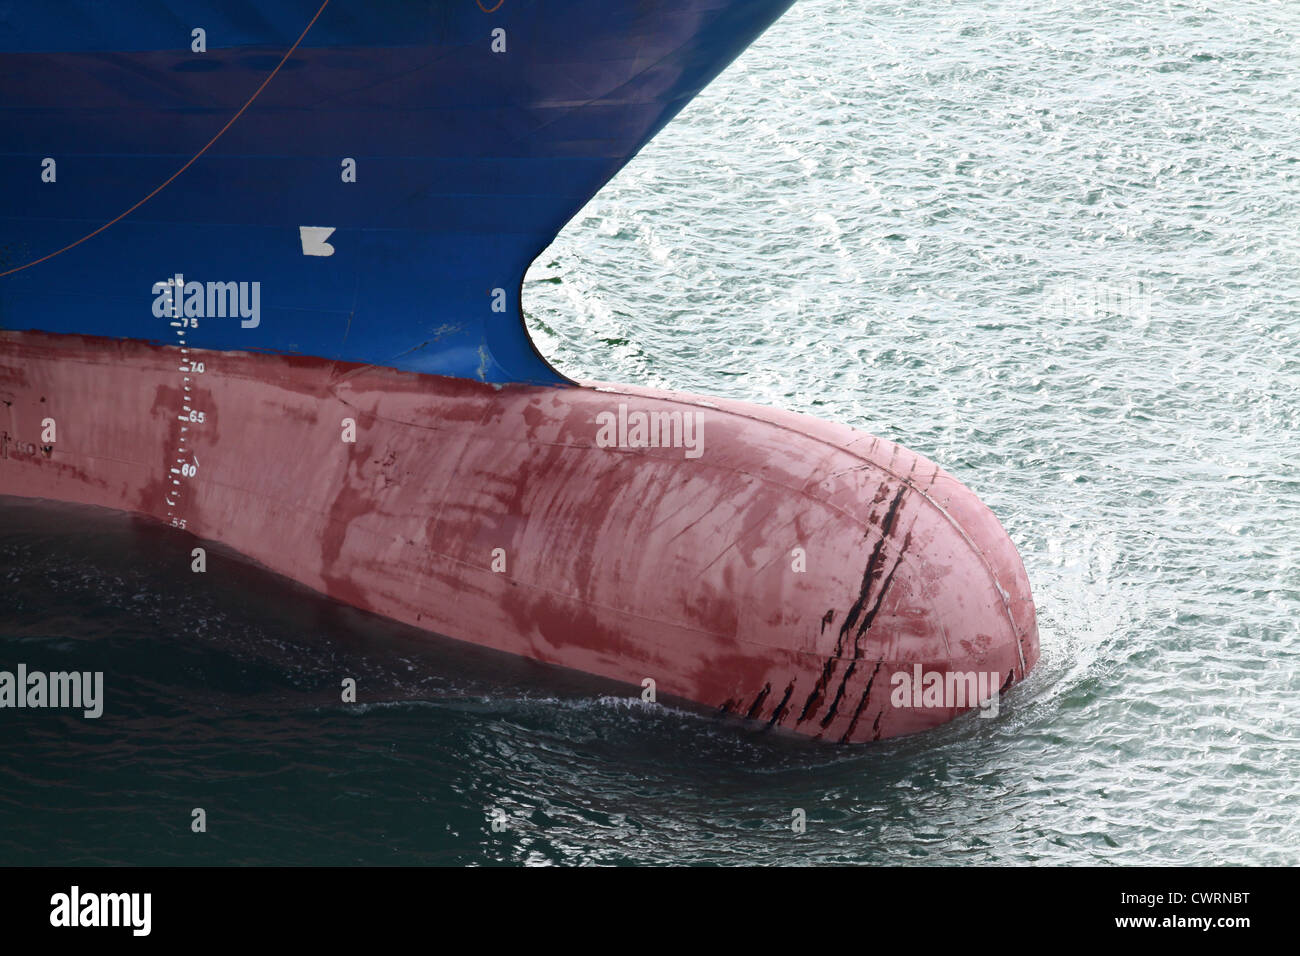 a ship s bulbous bow with load lines stock photo 50308828 alamy